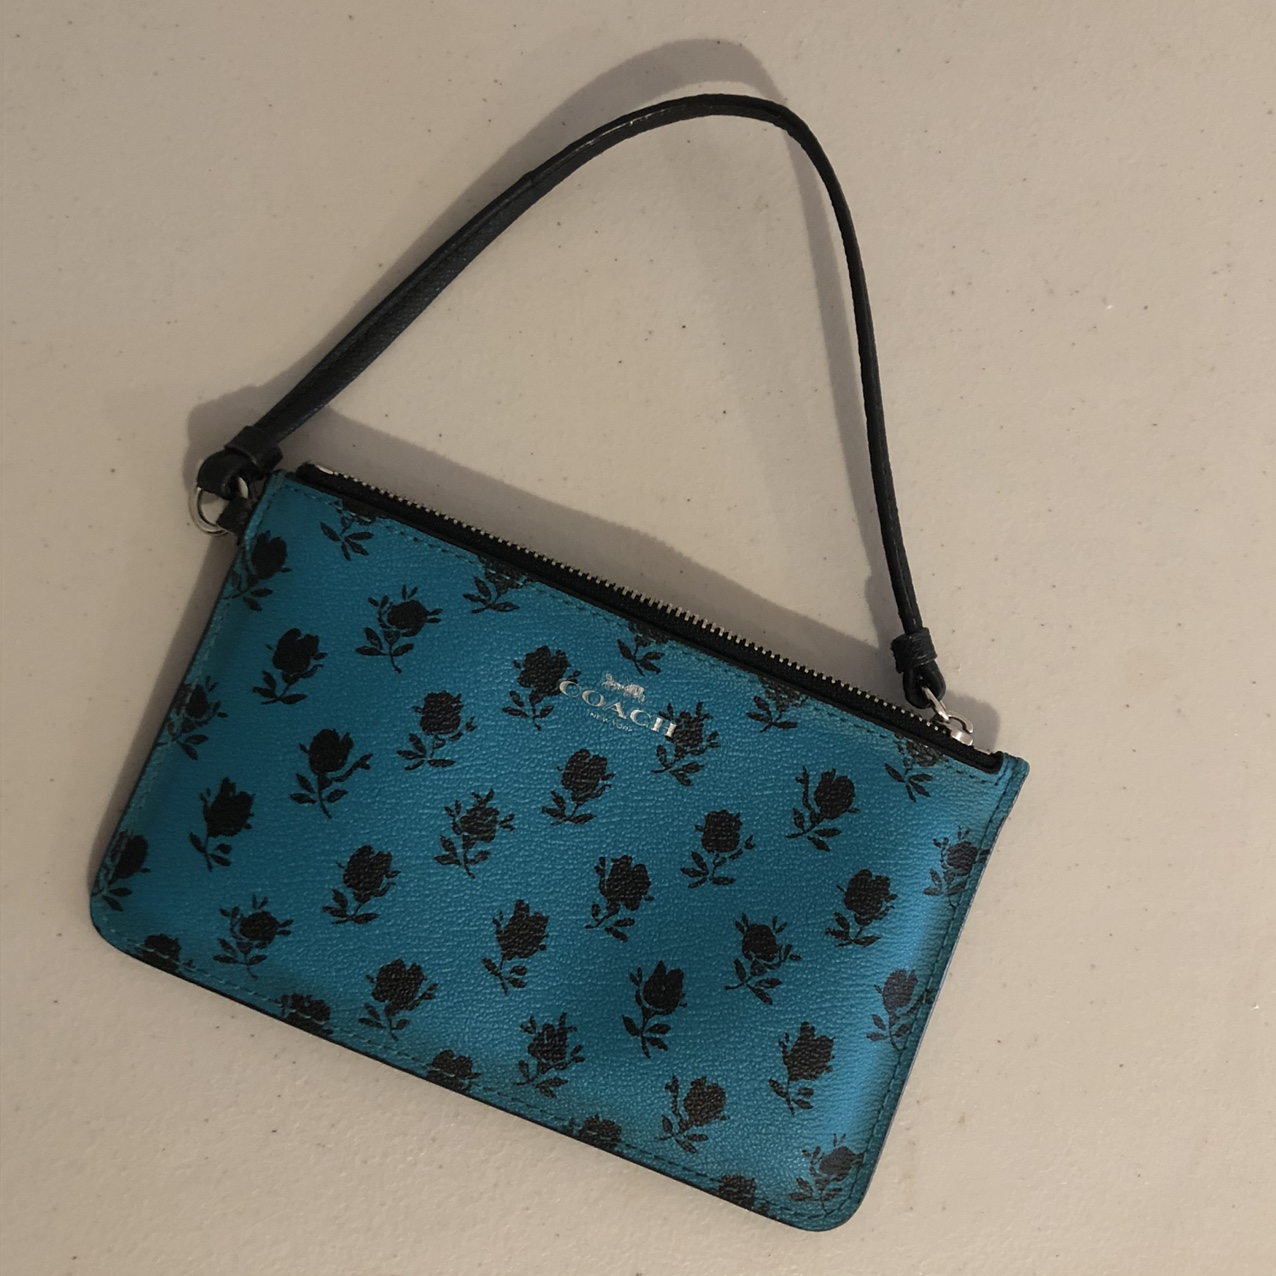 Product Image 1 - Coach wristlet blue and black.